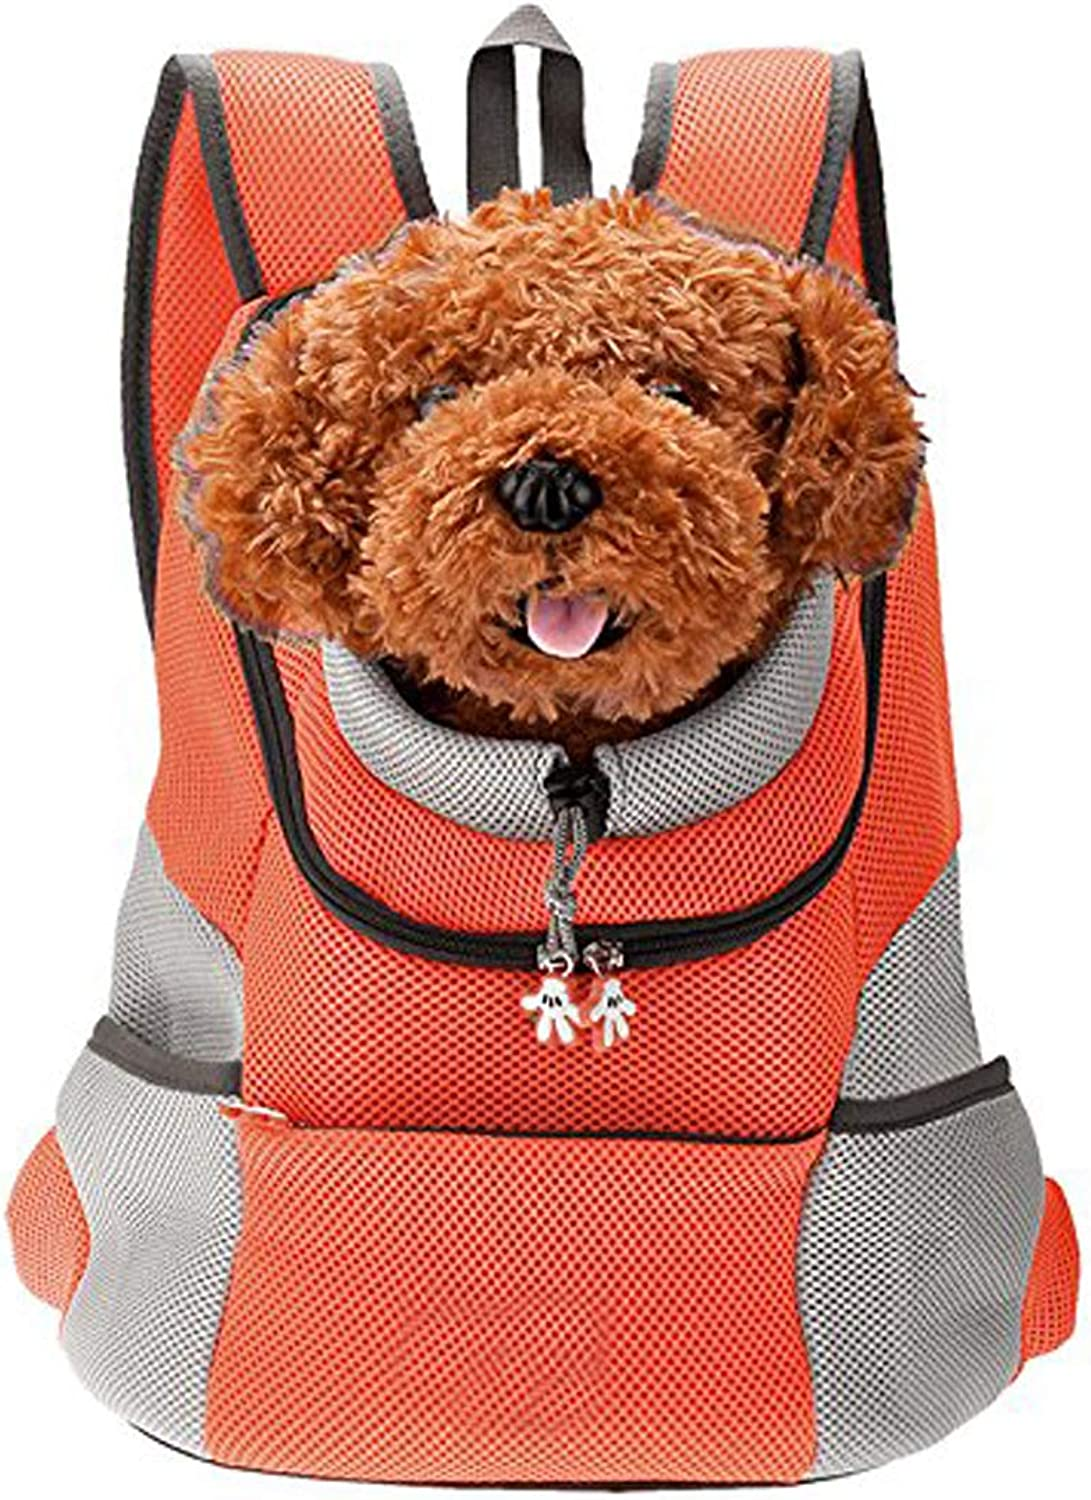 Globalwells Latest Style Comfortable Dog Cat Pet Carrier Backpack Travel Carrier Bag Front for Small Dogs Carrier Bike Hiking Outdoor